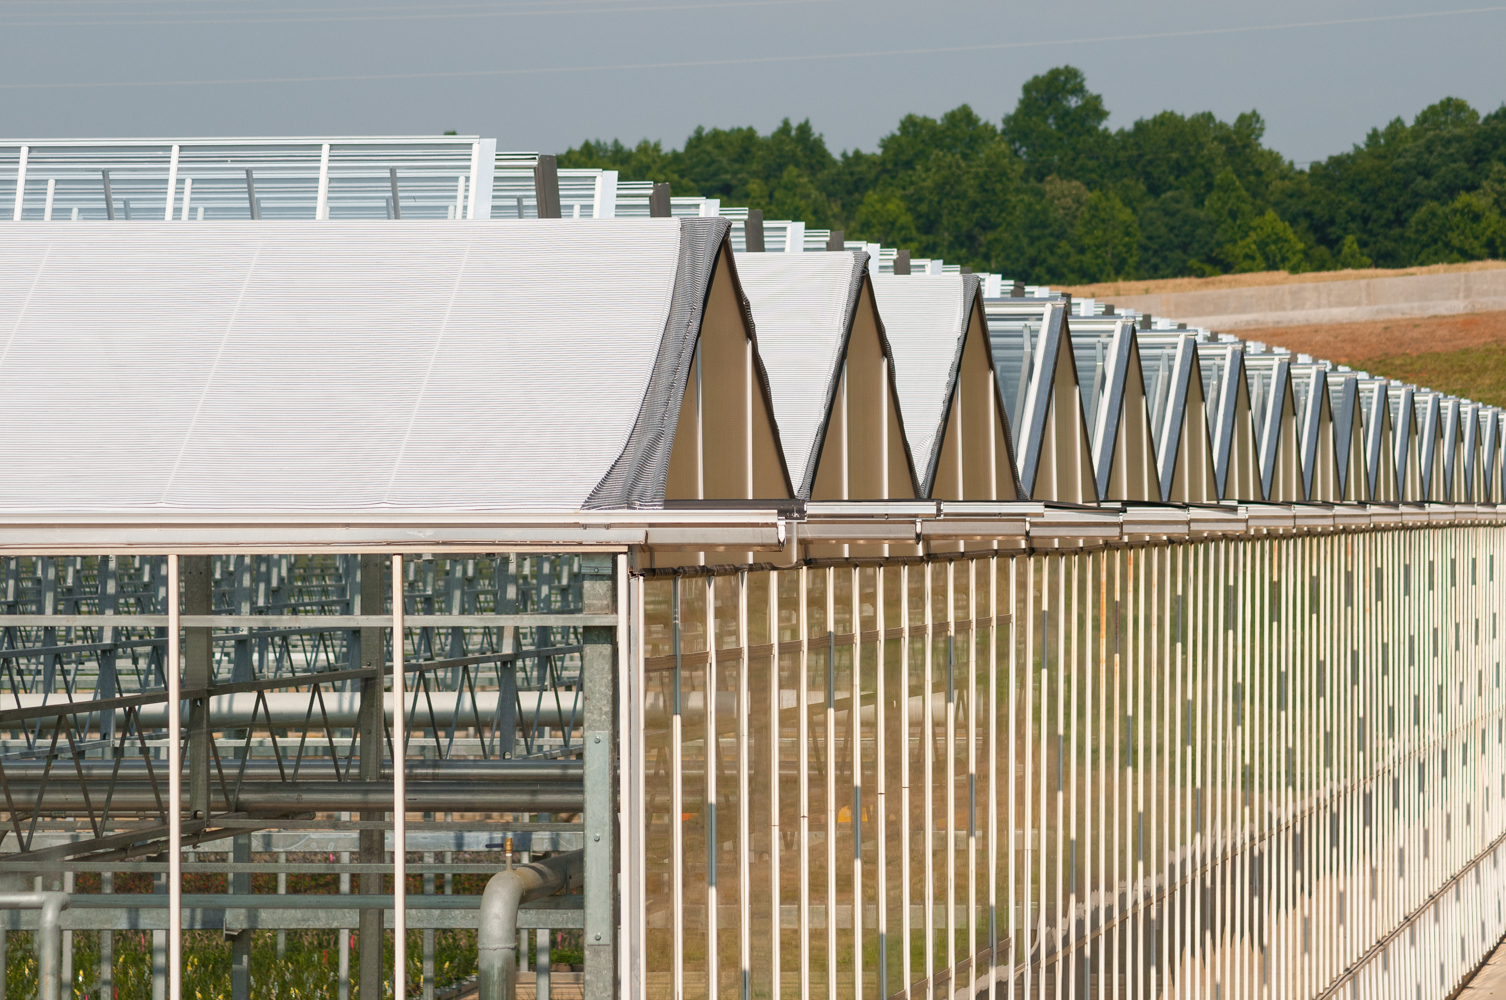 For every inch of rainfal, this 162 acre greenhouse roof allows the owner to collect and store 3 million gallons of water.